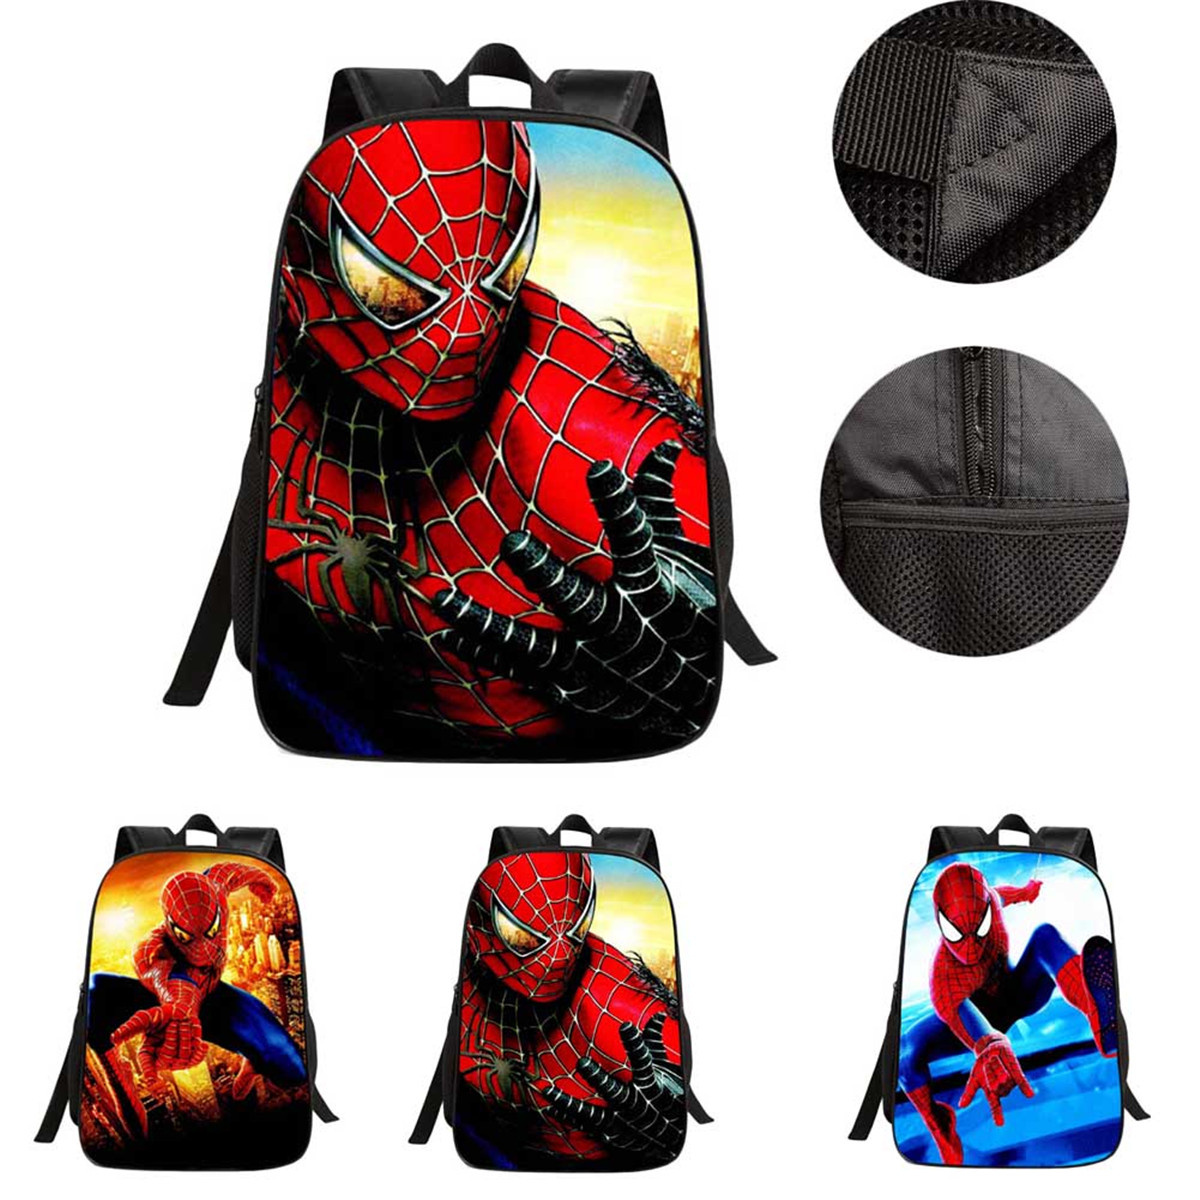 Spider-Man Backpack 844b564e97f6